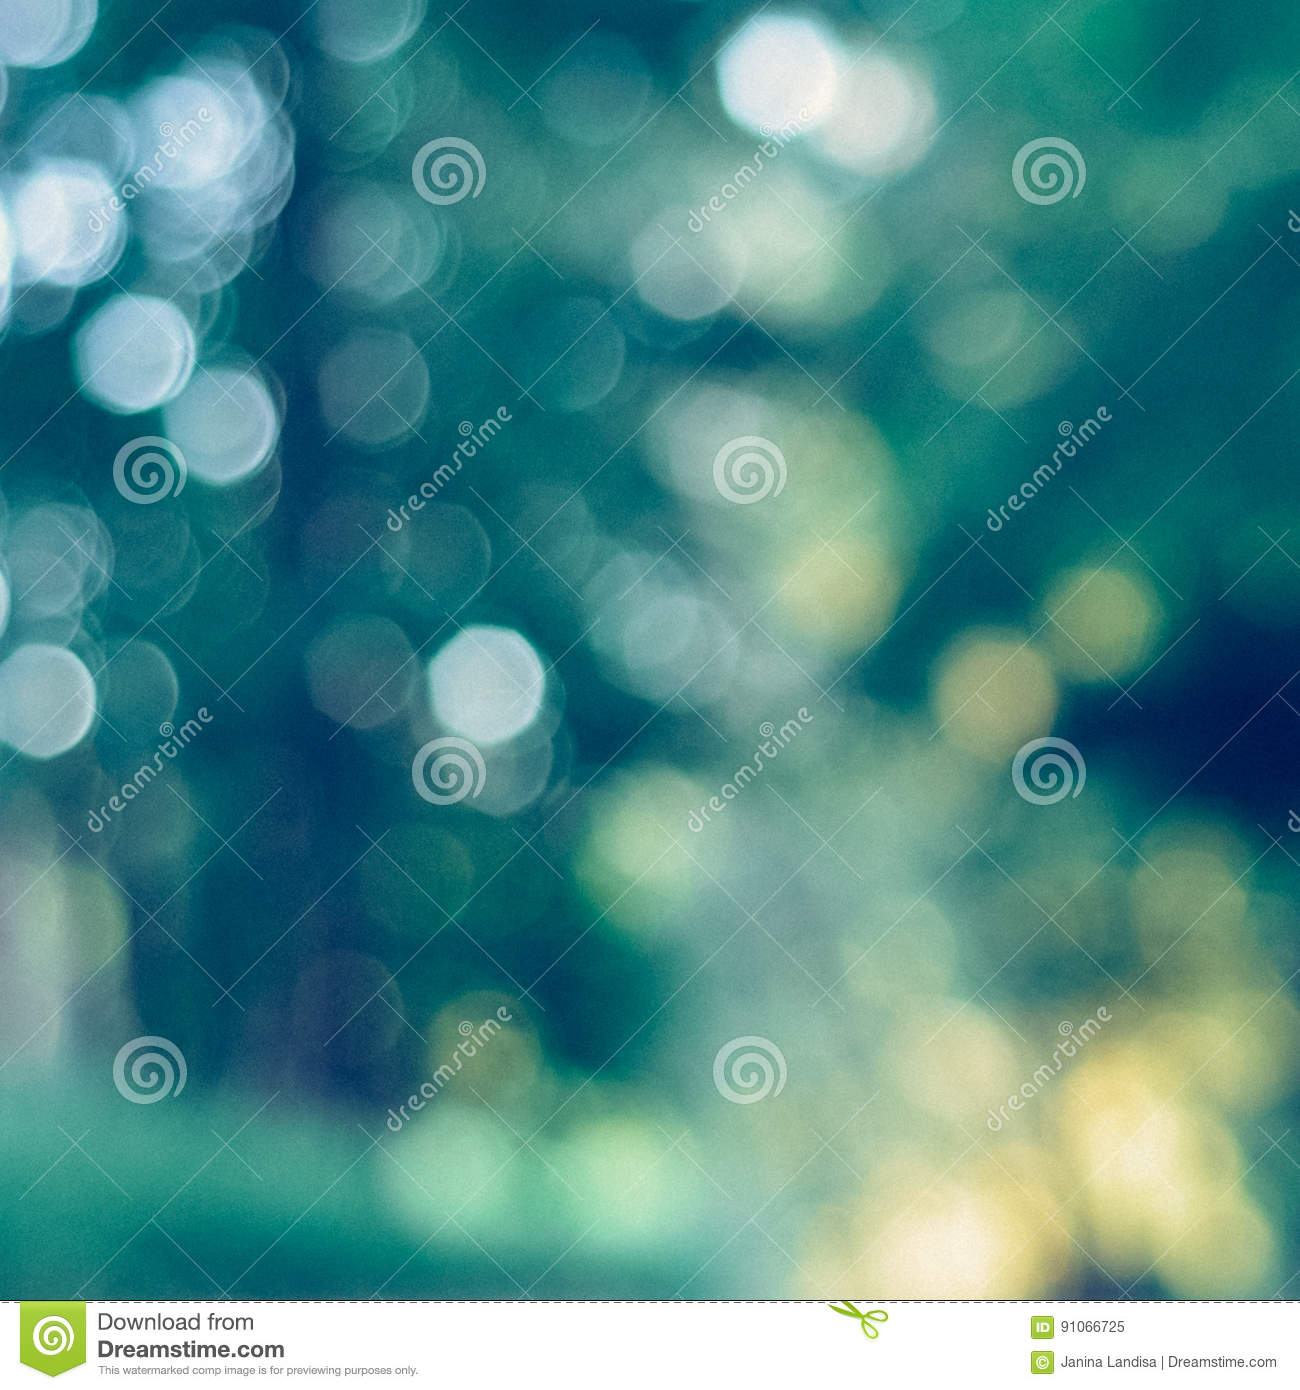 Blurred green background with interesting bokeh - instant vintage square photo